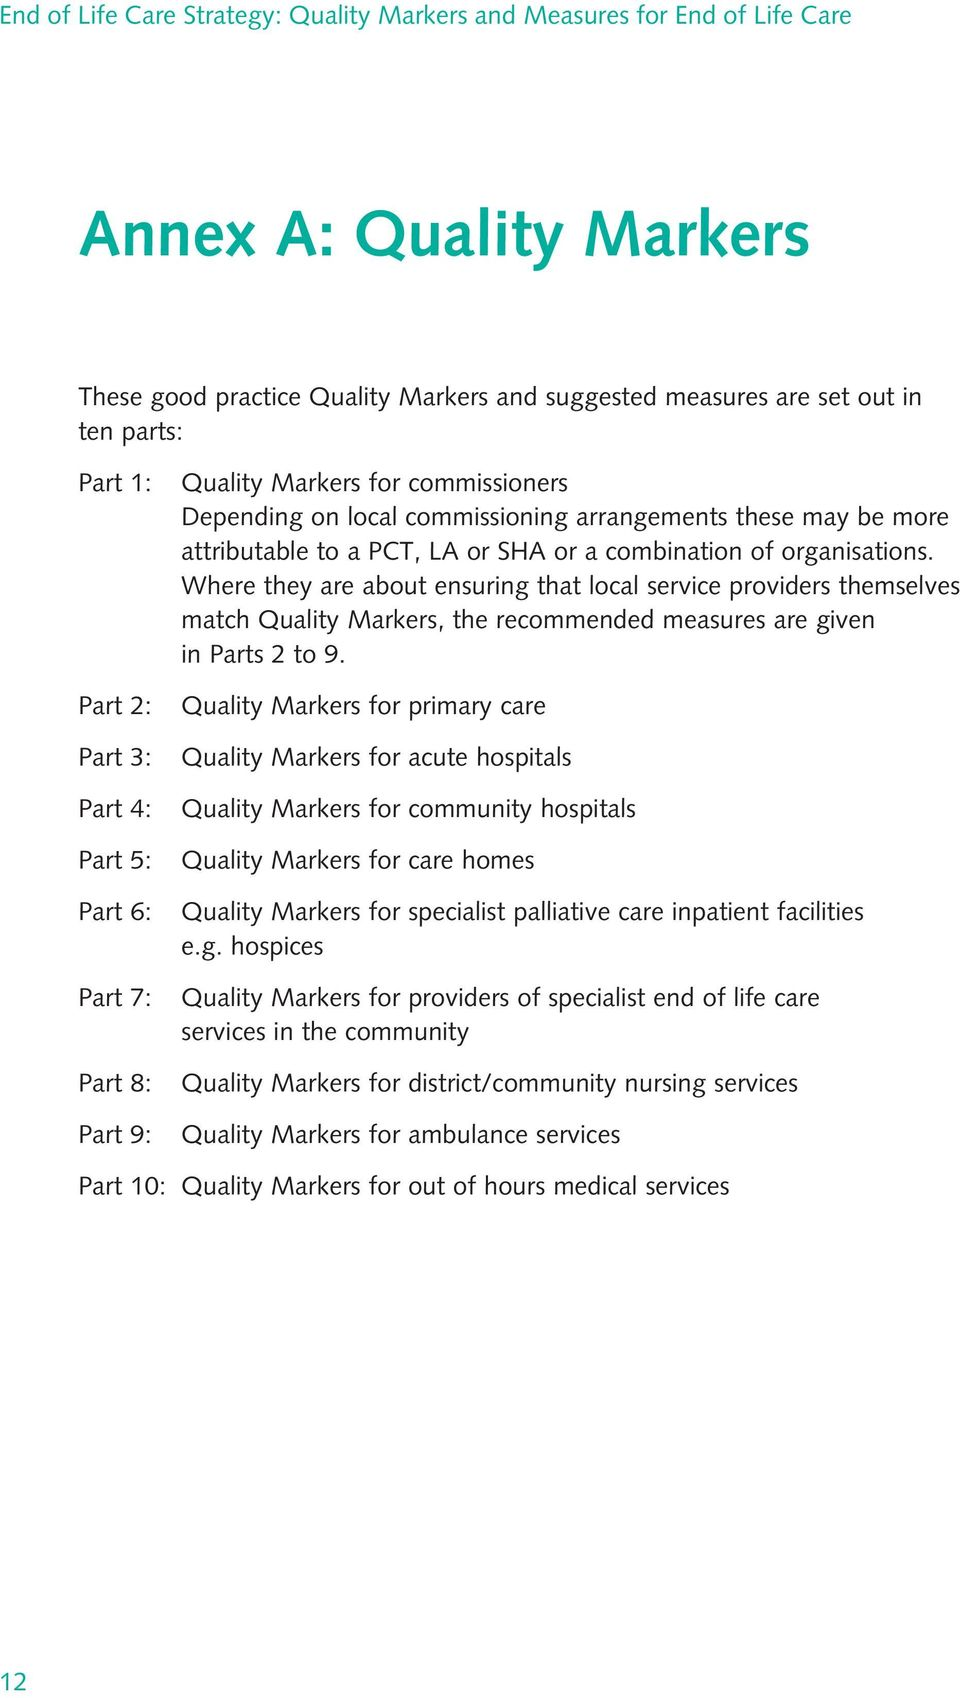 Where they are about ensuring that local service providers themselves match Quality Markers, the recommended measures are given in Parts 2 to 9.